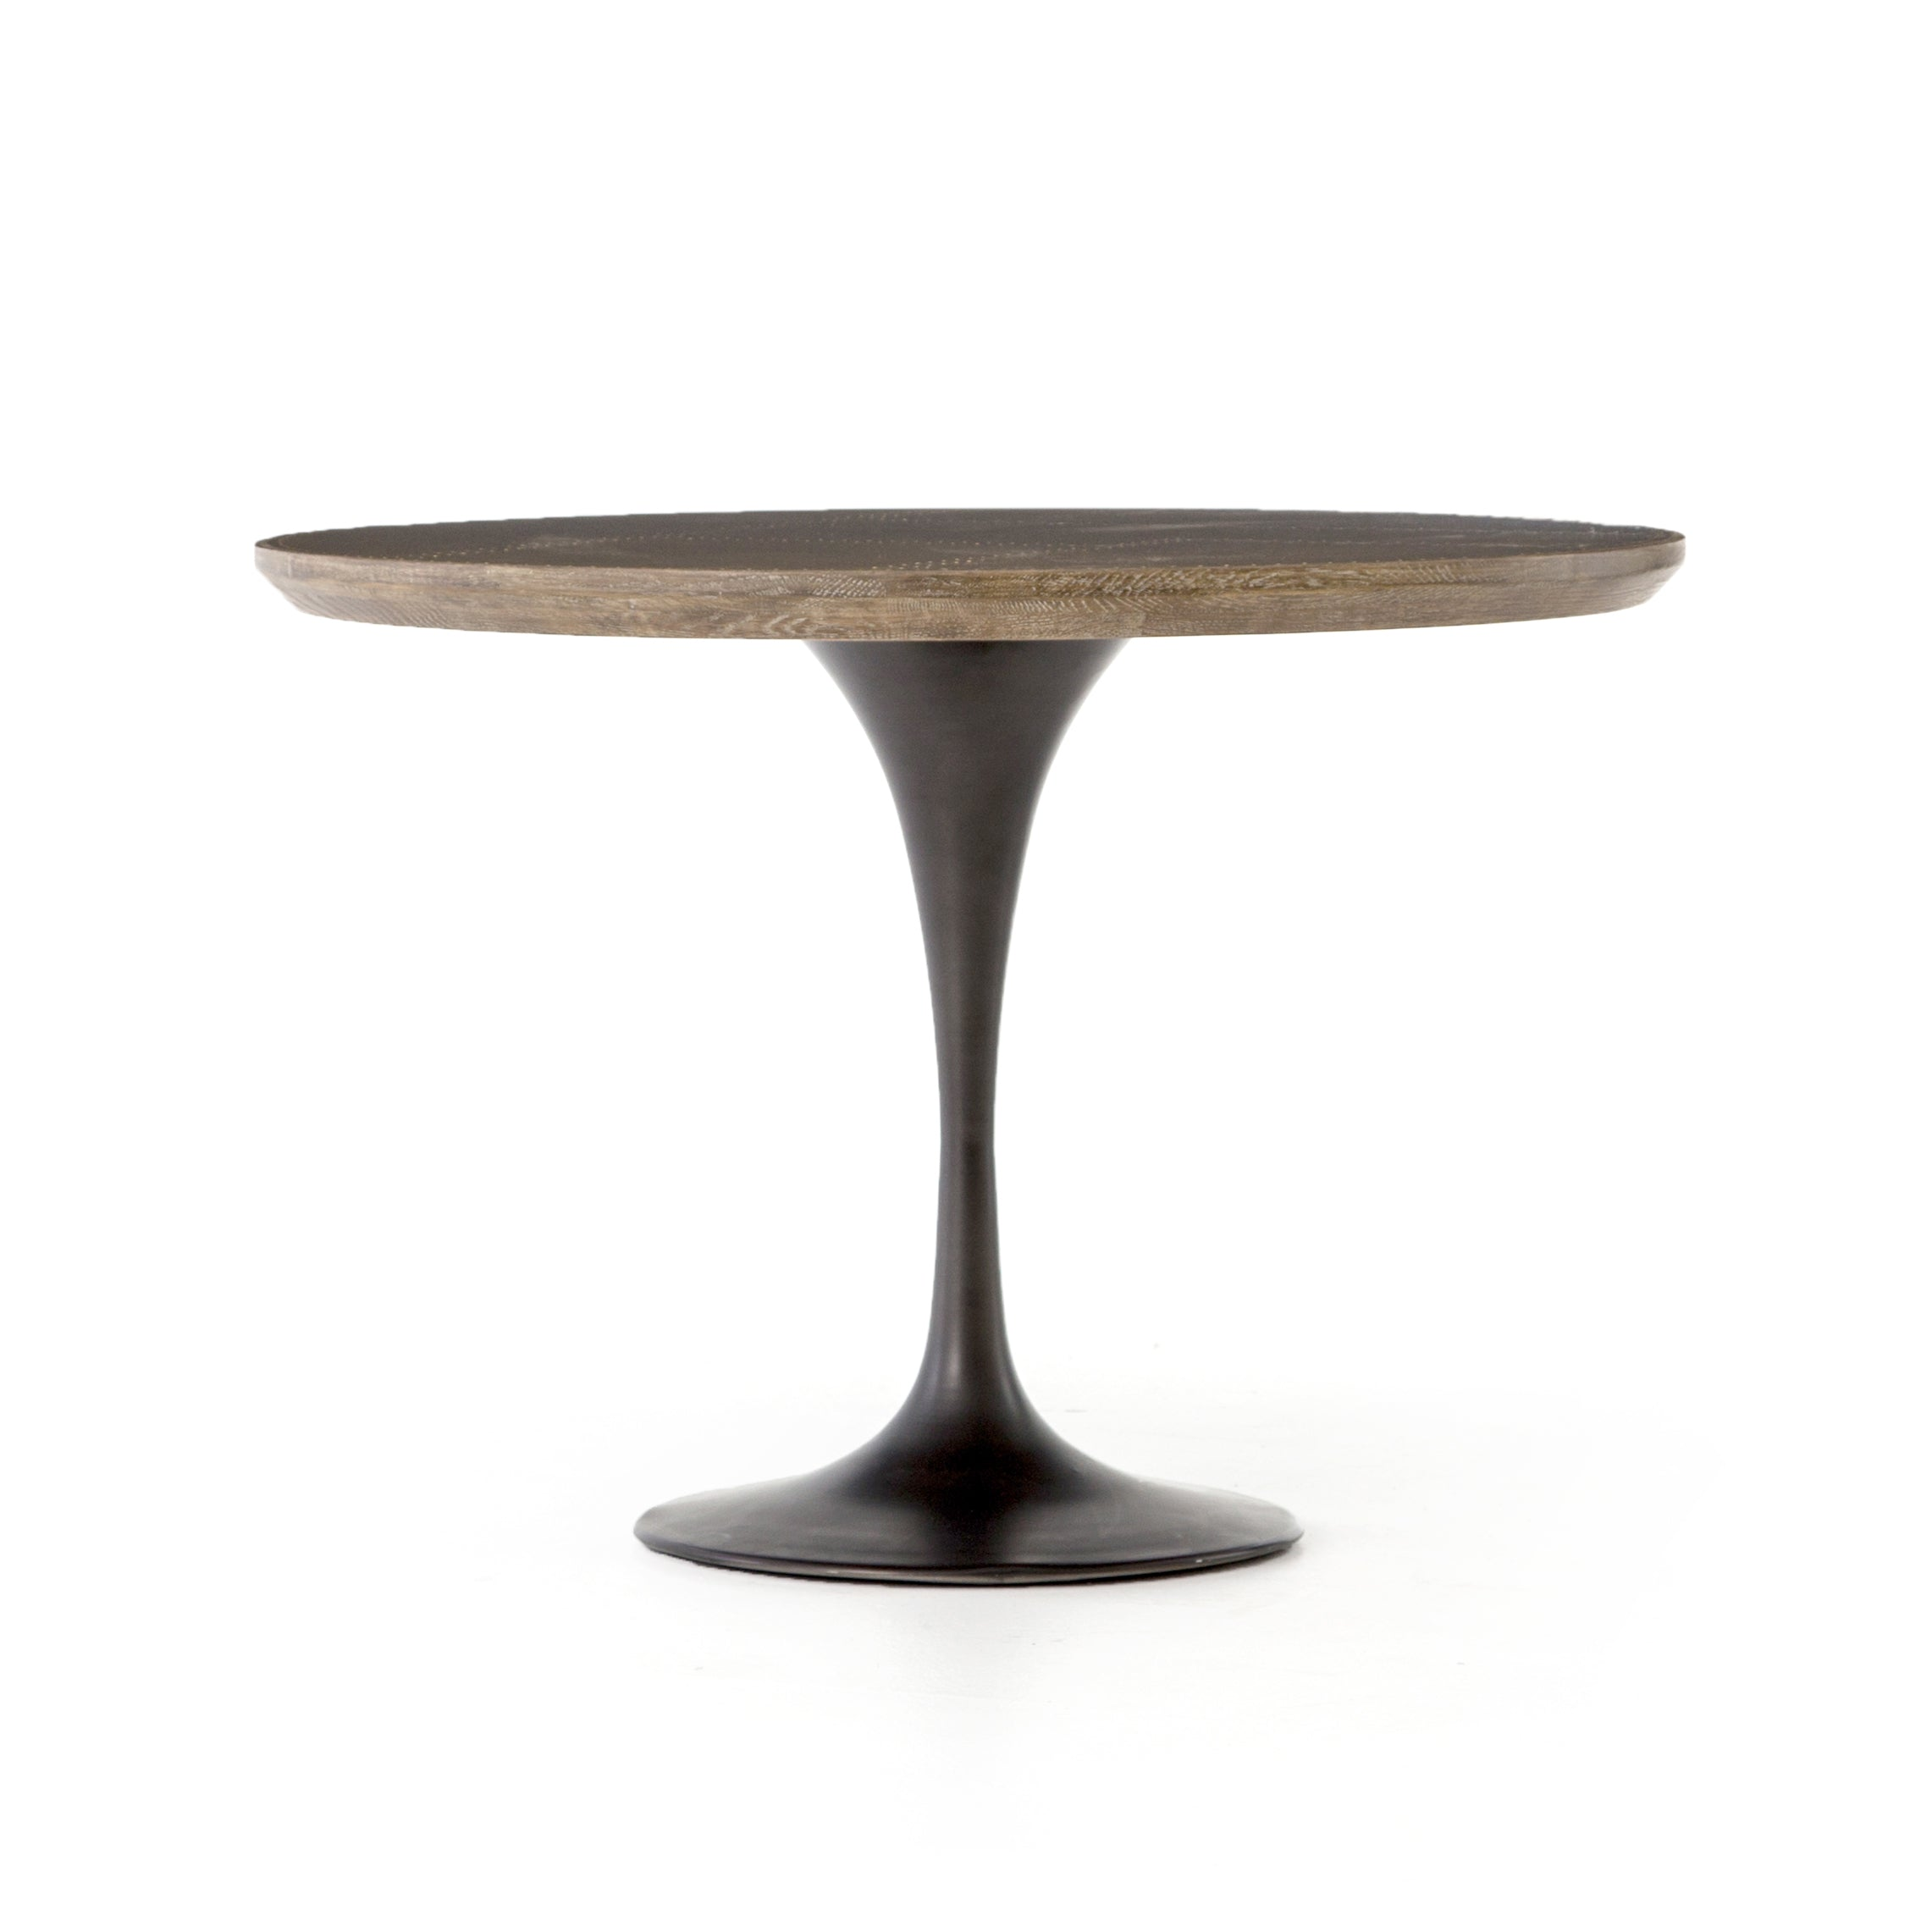 Genial Pedestal Table With Cast Iron Base, Oak Top With Brass Patchwork